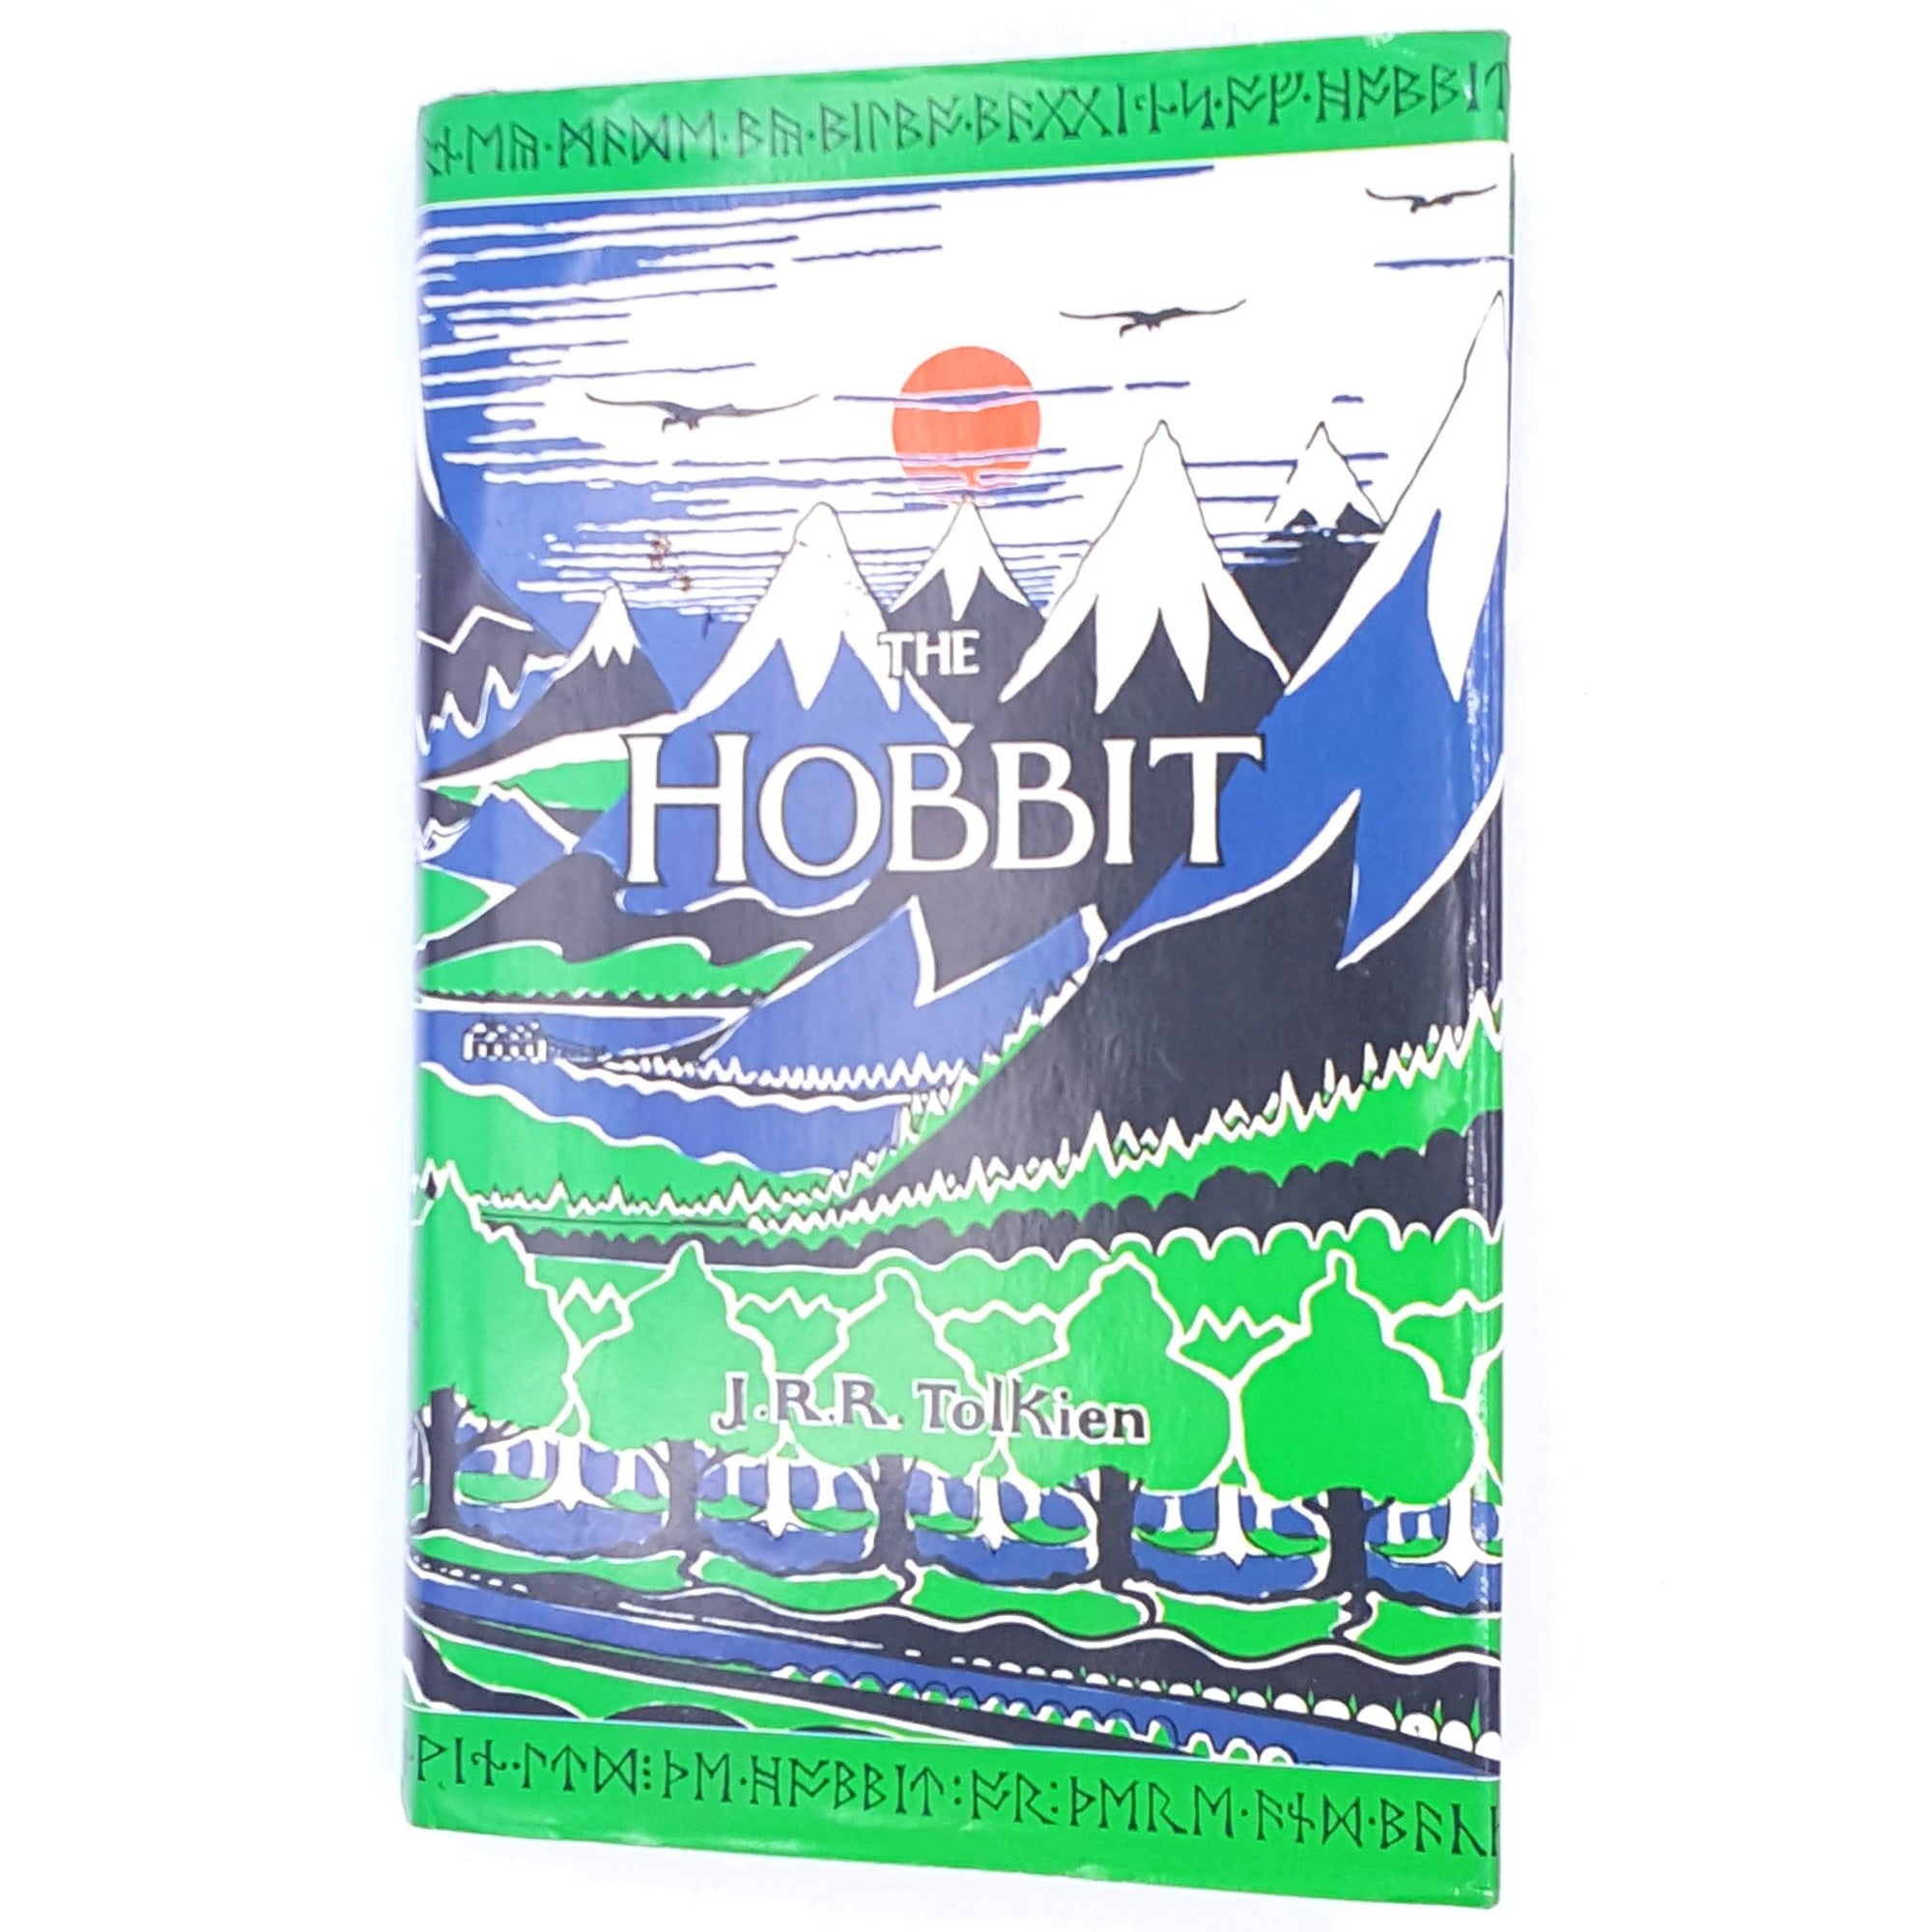 The Hobbit. J.R.R. Tolkien